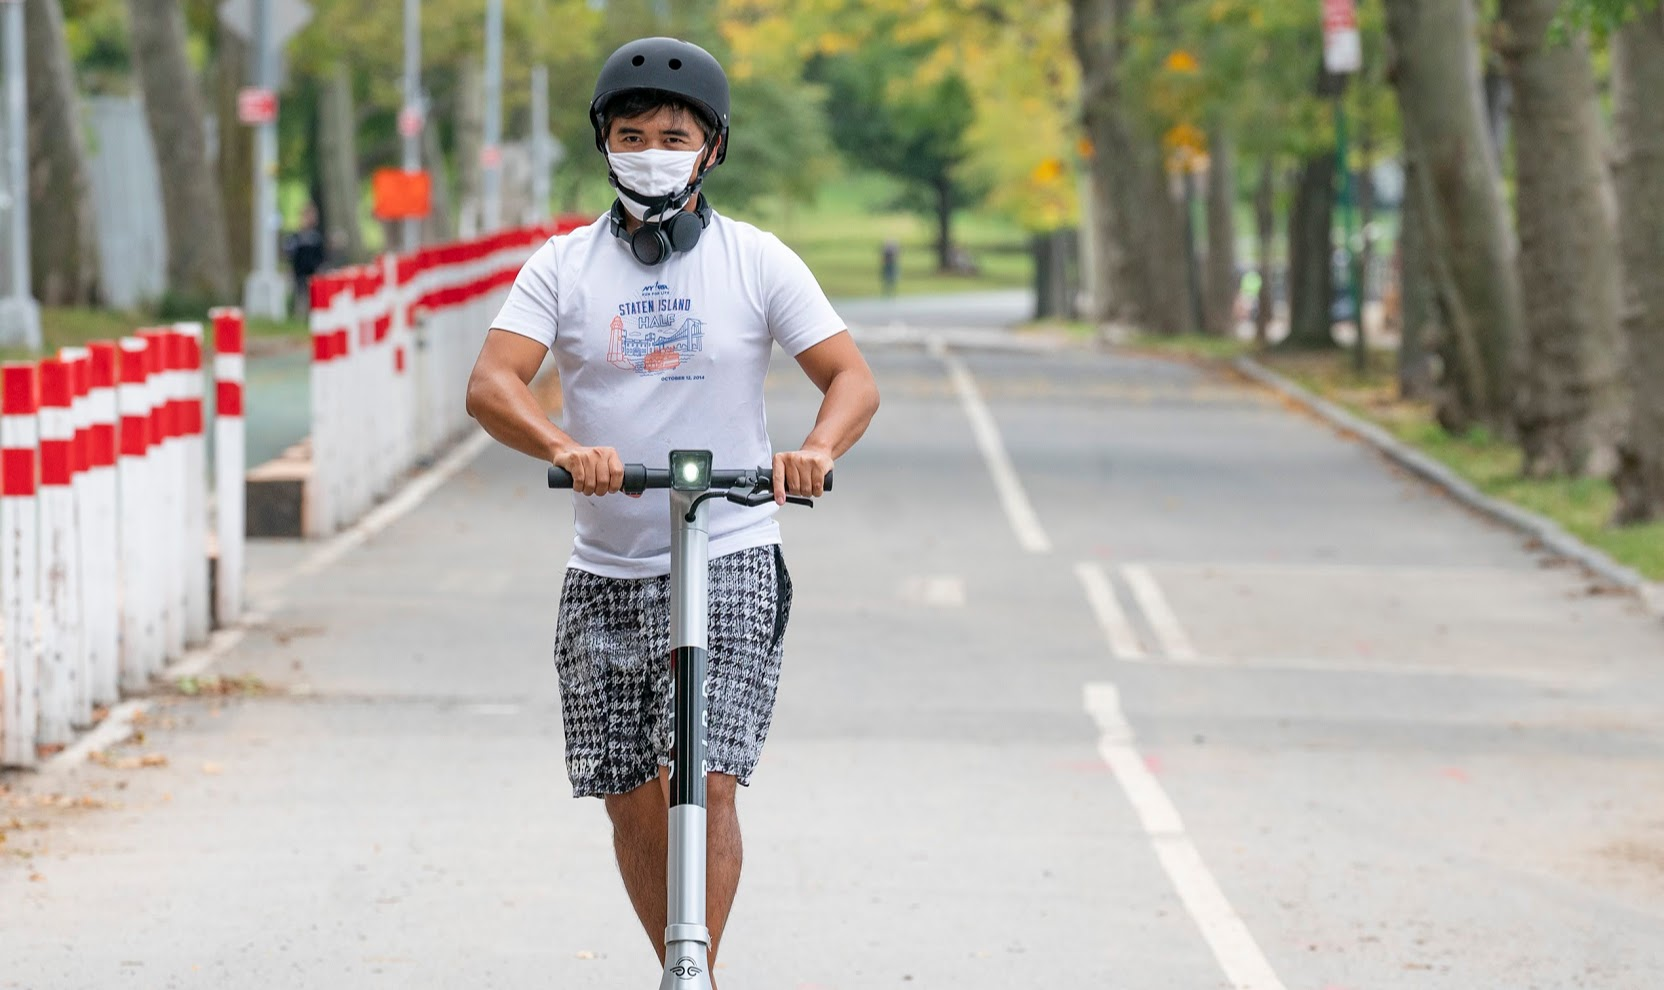 Man rides Bird scooter, wearing helmet and mask